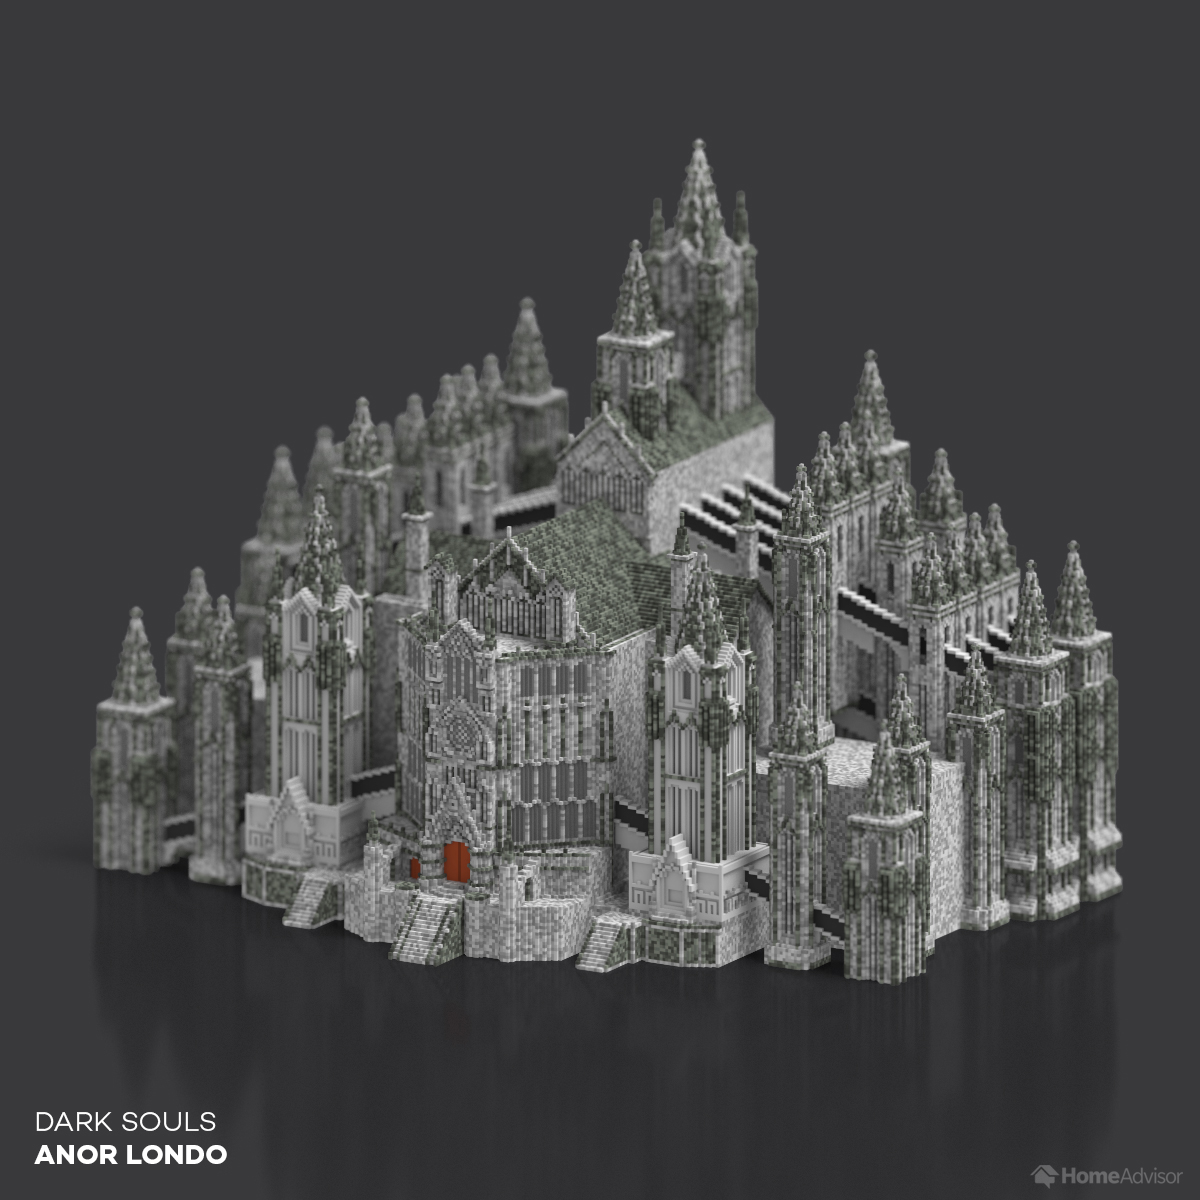 See Iconic Video Game Architecture Recreated in Voxel Art!